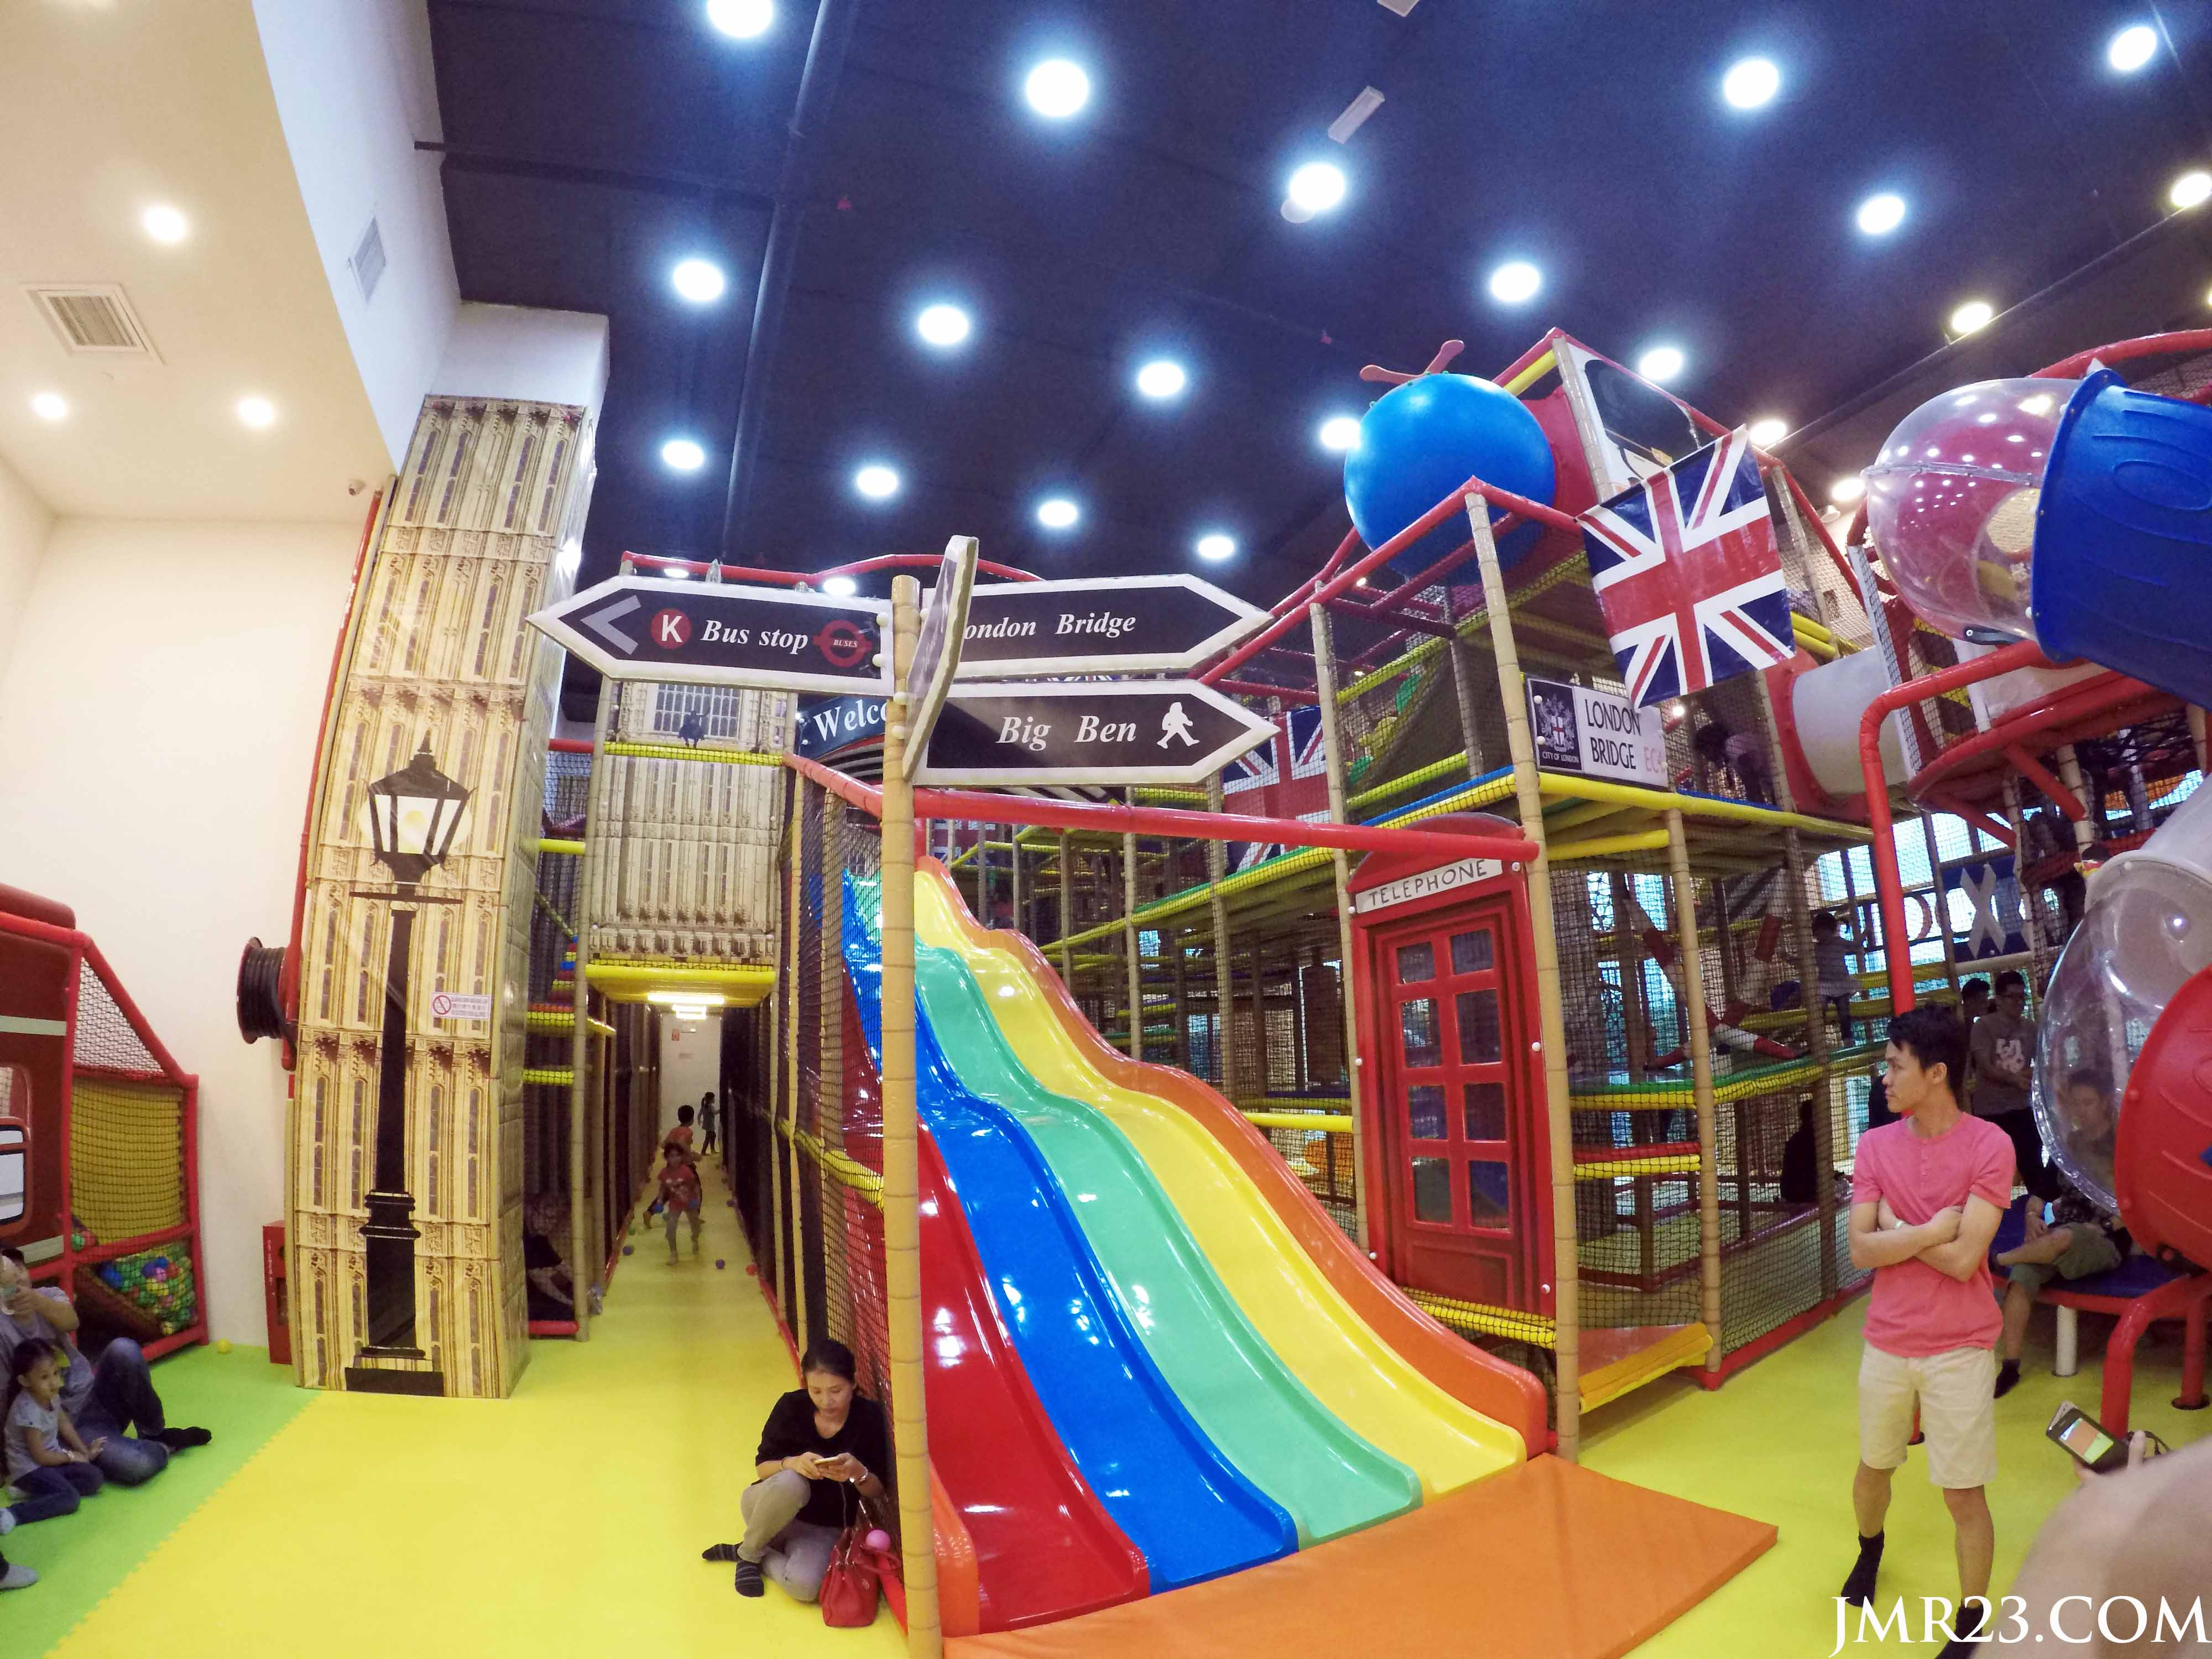 The Parenthood Playland di Sunway Pyramid.